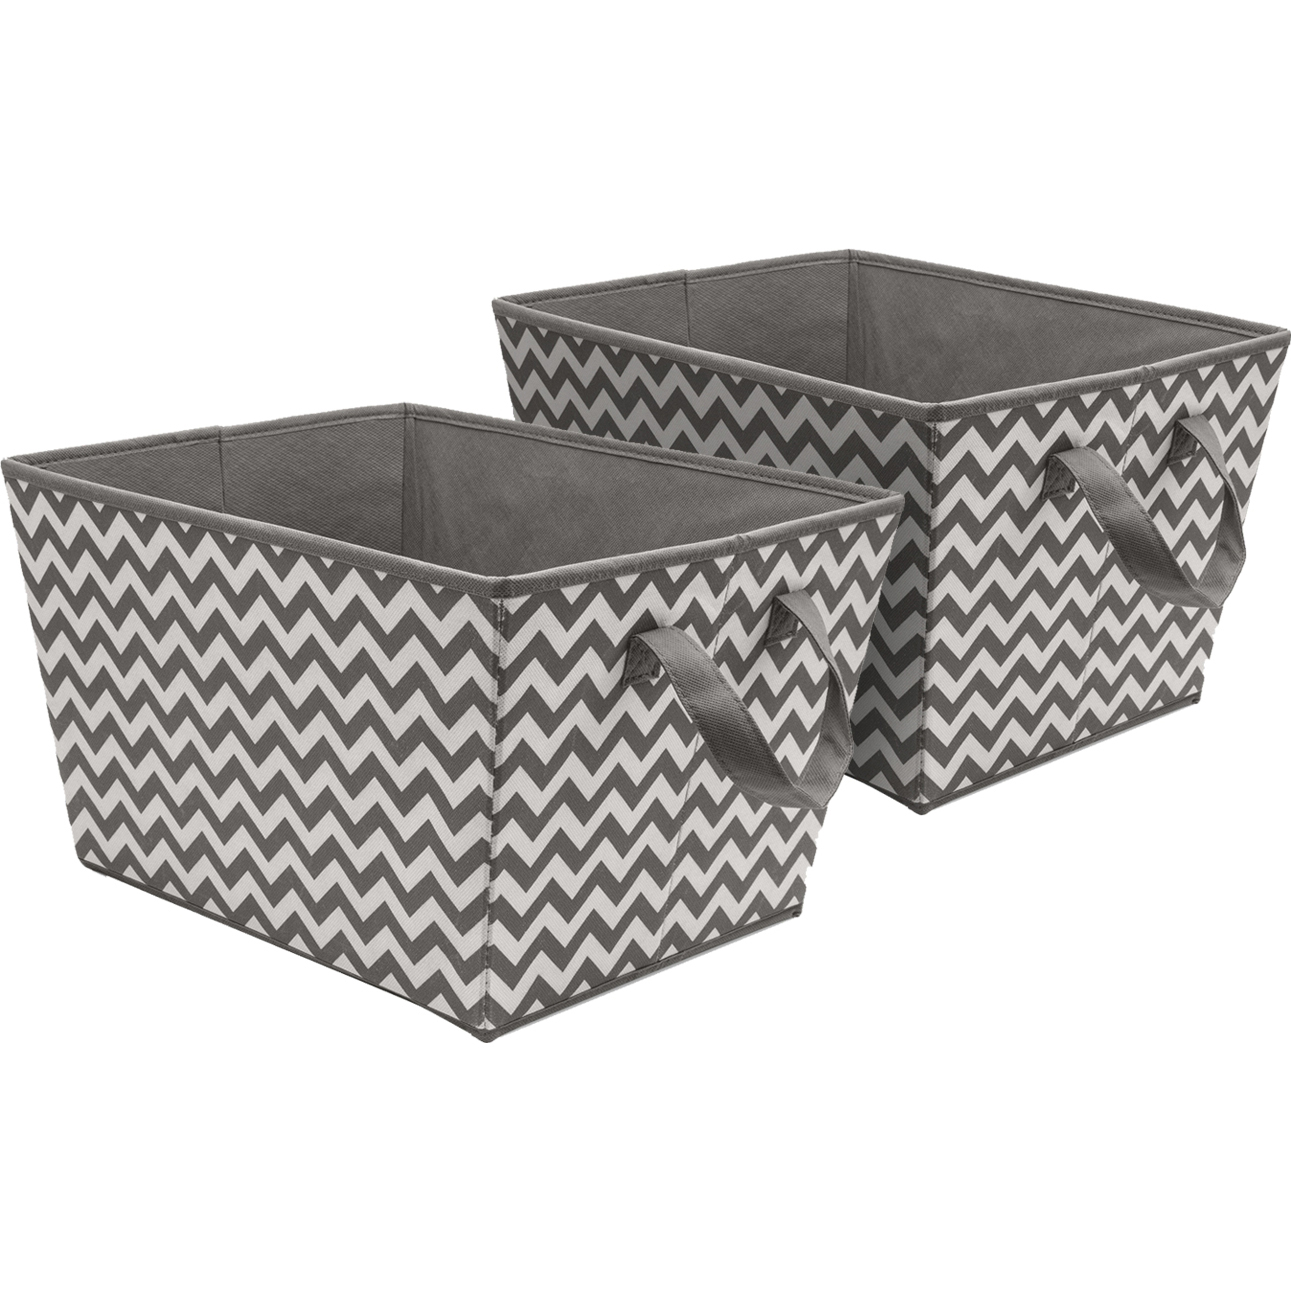 Sorbus Tapered Storage Basket Bins, Chevron Fabric Baskets For Household  Essentials